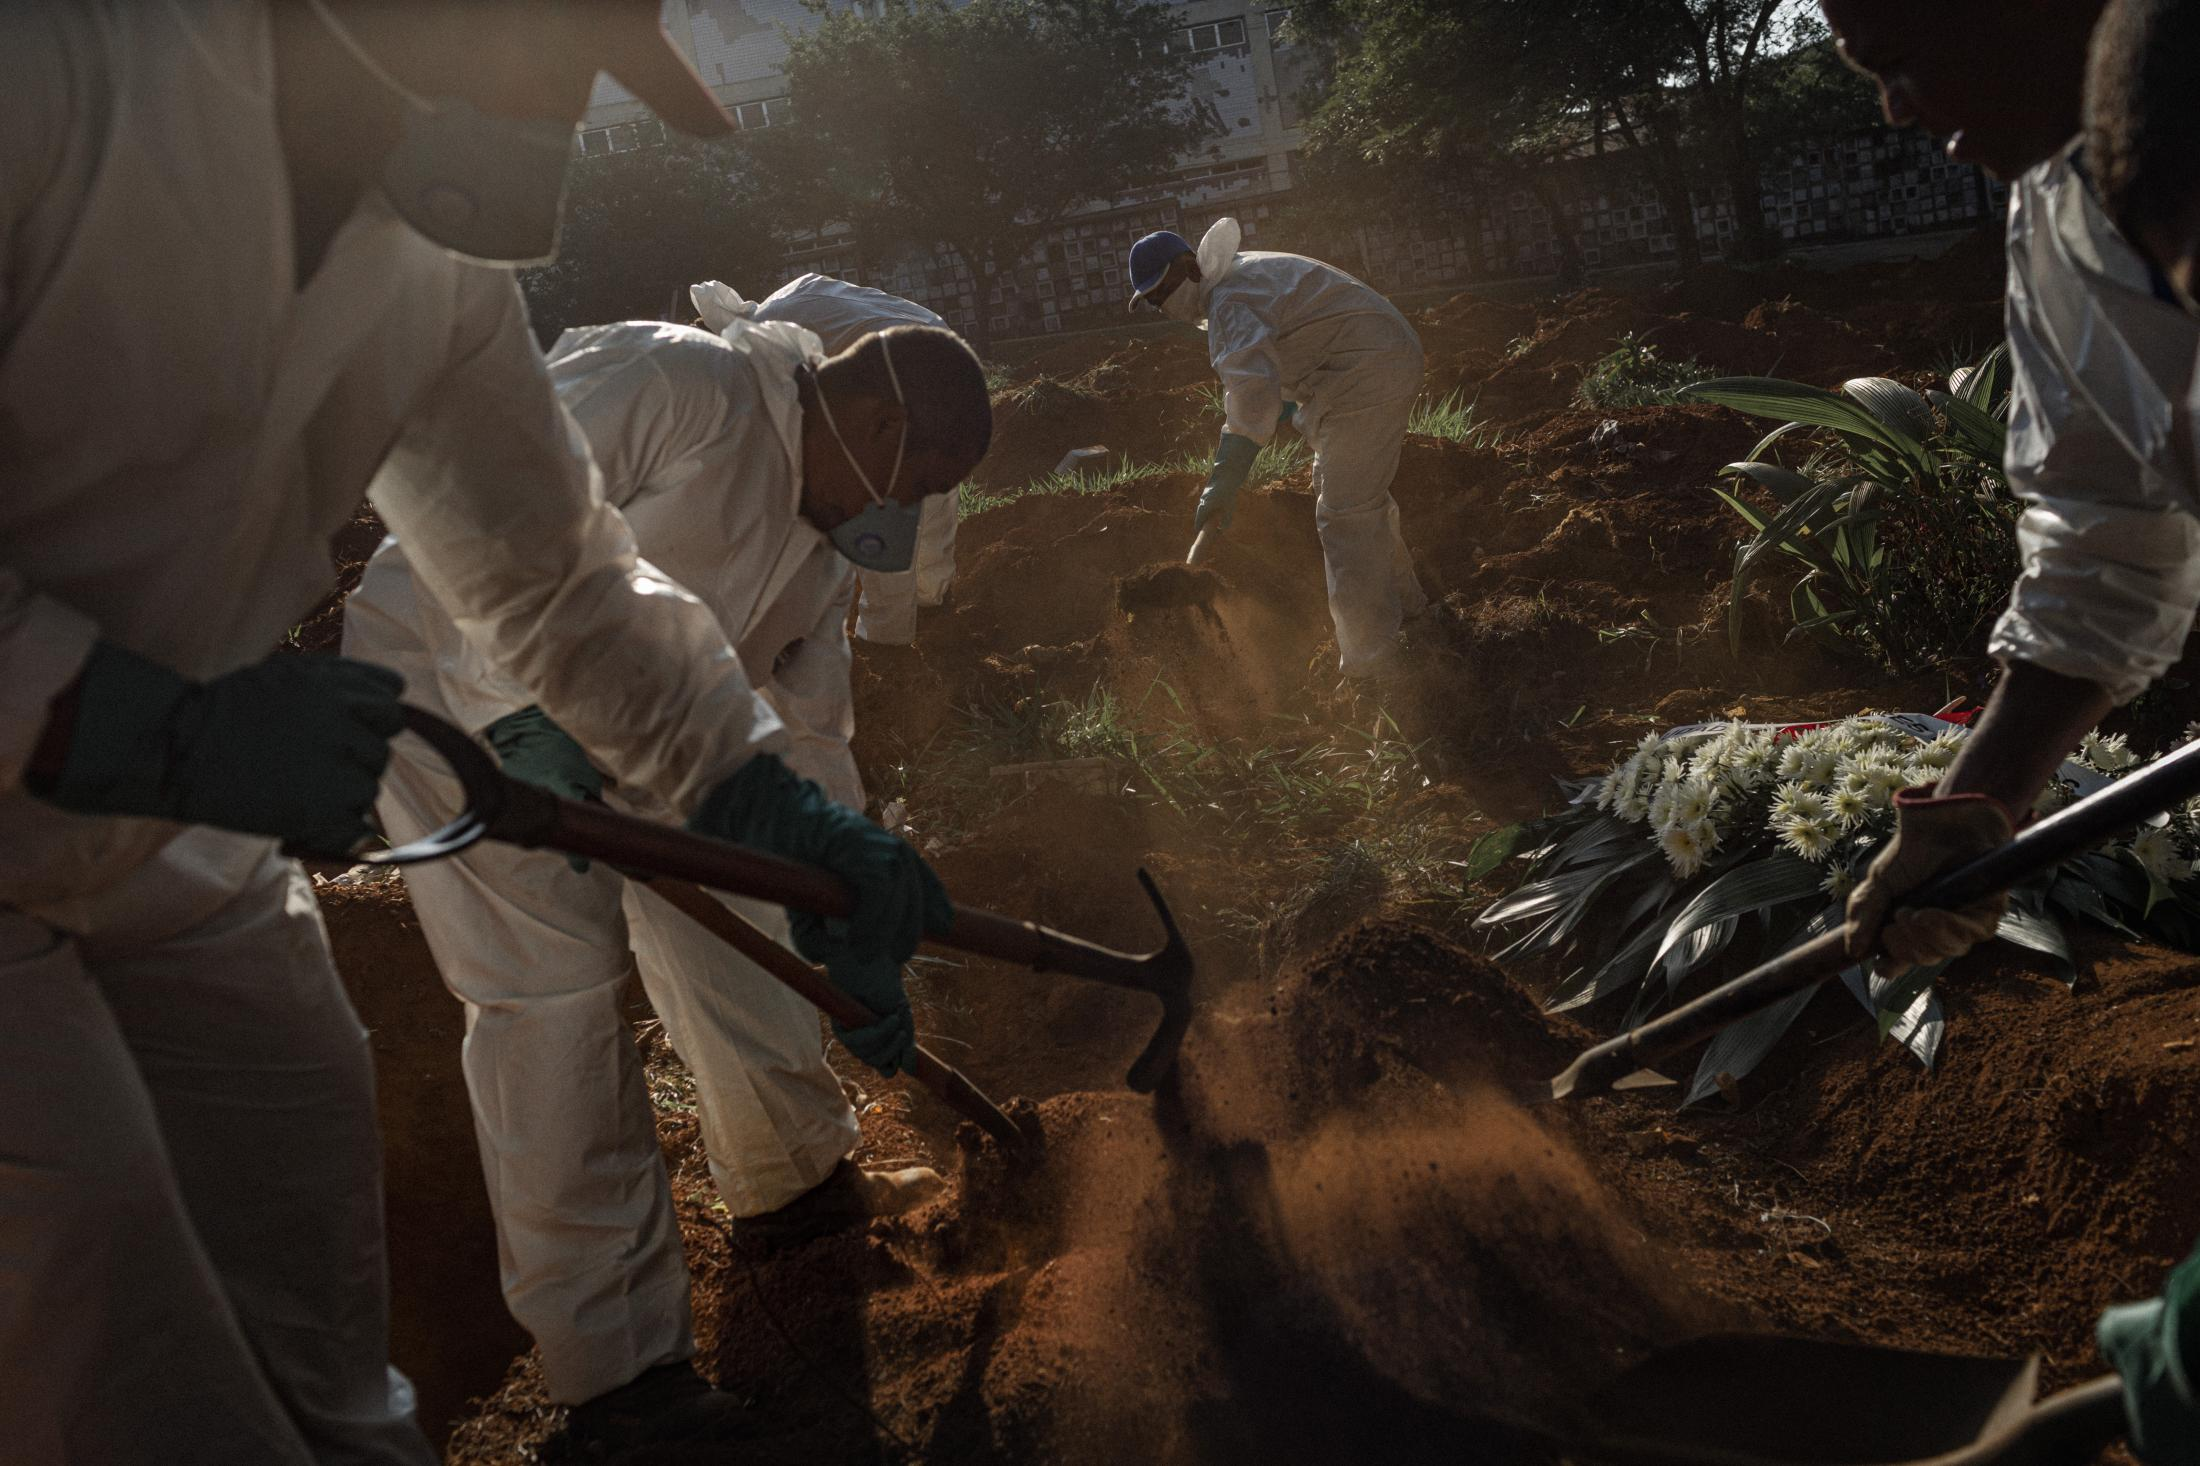 """April 21, 2020 Vila Formosa's gravediggers are usually Black men from the outskirts of São Paulo. Many commute over two hours from their homes to the cemetery. During the pandemic, 220 new workers with no previous experience in the trade were hired with precarious labor contracts to sustain the increased number of burials. """"People see us just as someone in a white suit, without feelings, who are burying their loved ones. You become invisible,"""" explains Luiz Silva, a veteran gravedigger from Vila Formosa. Aerial images of Vila Formosa, the largest cemetery in Latin America, were seen around the world at the beginning of the new coronavirus pandemic in Brazil, showing hundreds of open-air graves. The public focused on the victims of Covid-19, but little attention was paid to the silent army of gravediggers, last foot soldiers in a lost war that killed more than 200,000 people in the country by January 2020, according to the Brazilian Ministry of Health."""